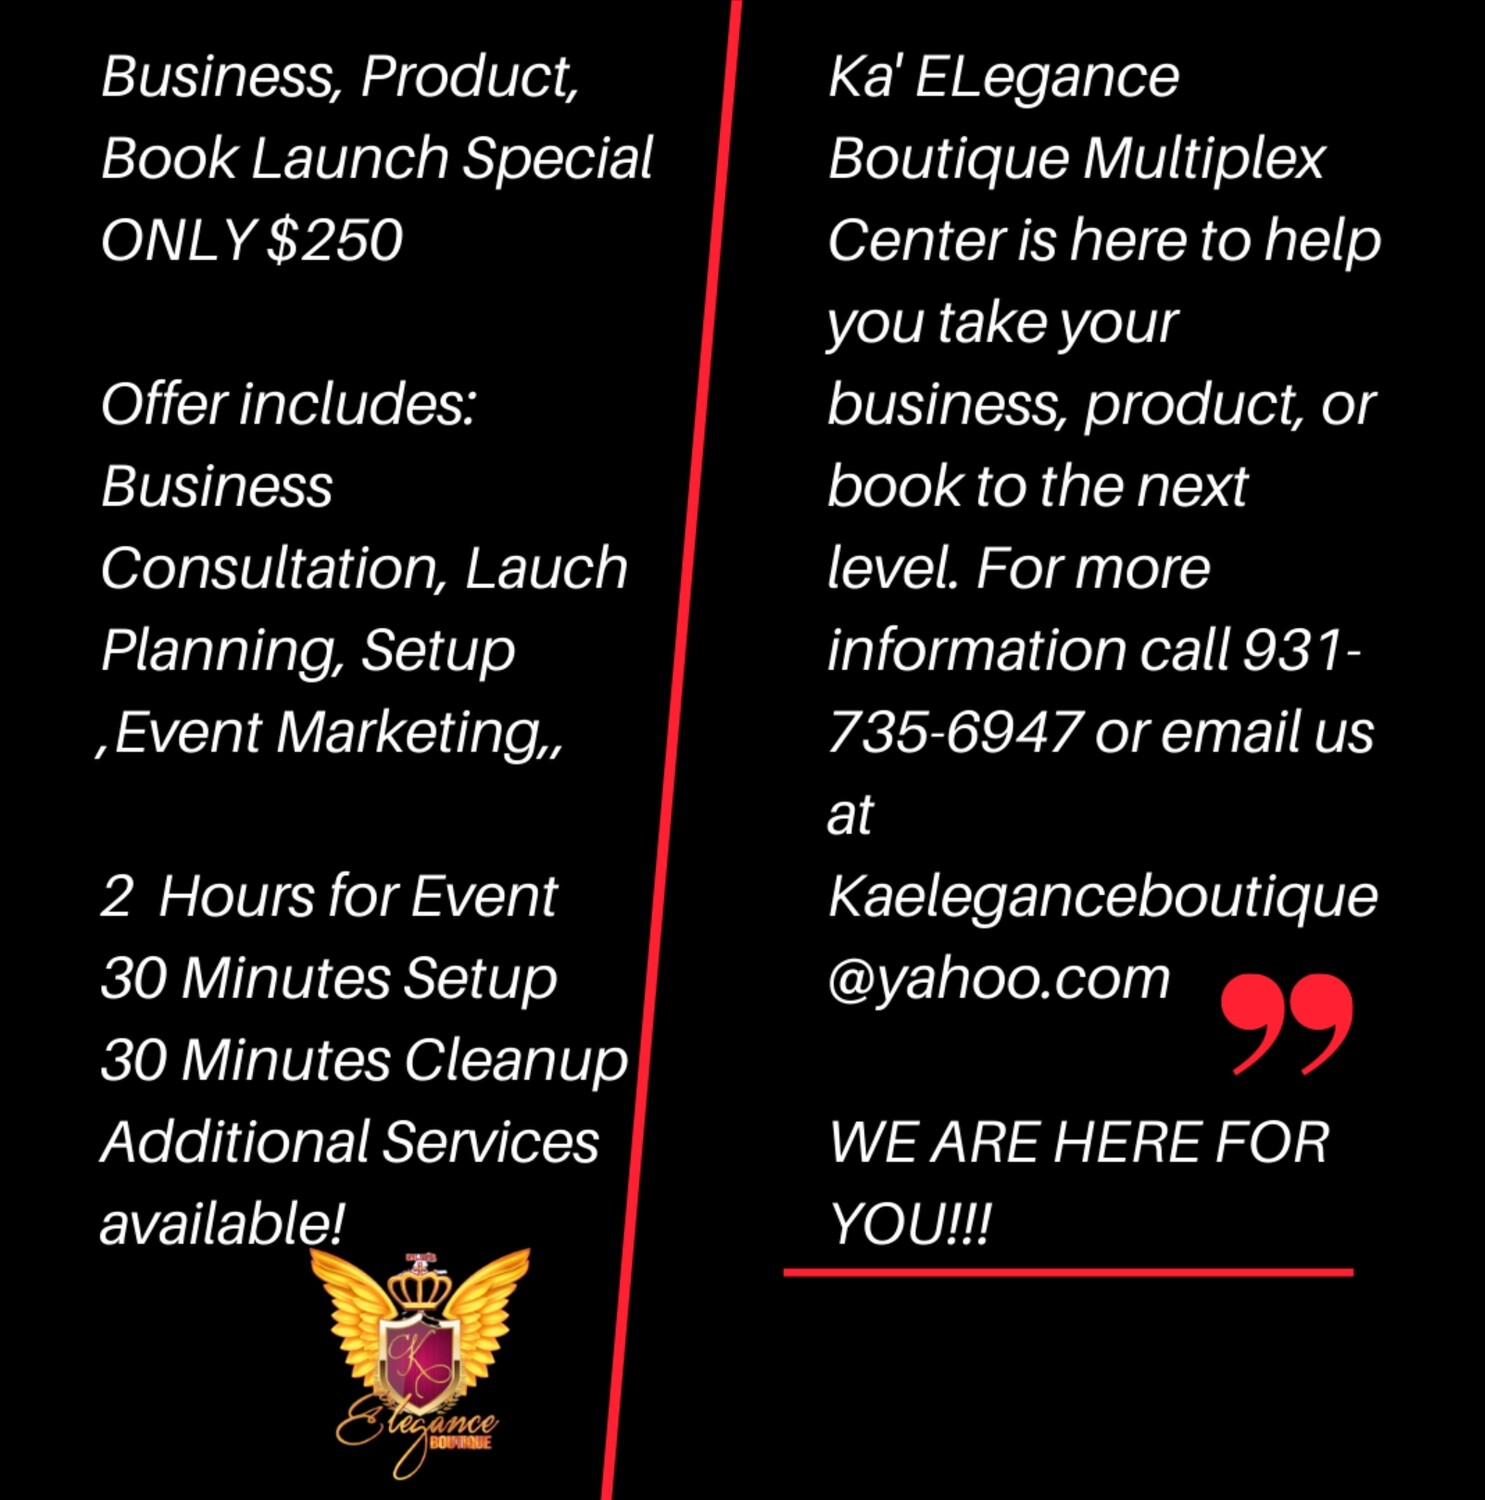 Business, Product, Book Launch Special